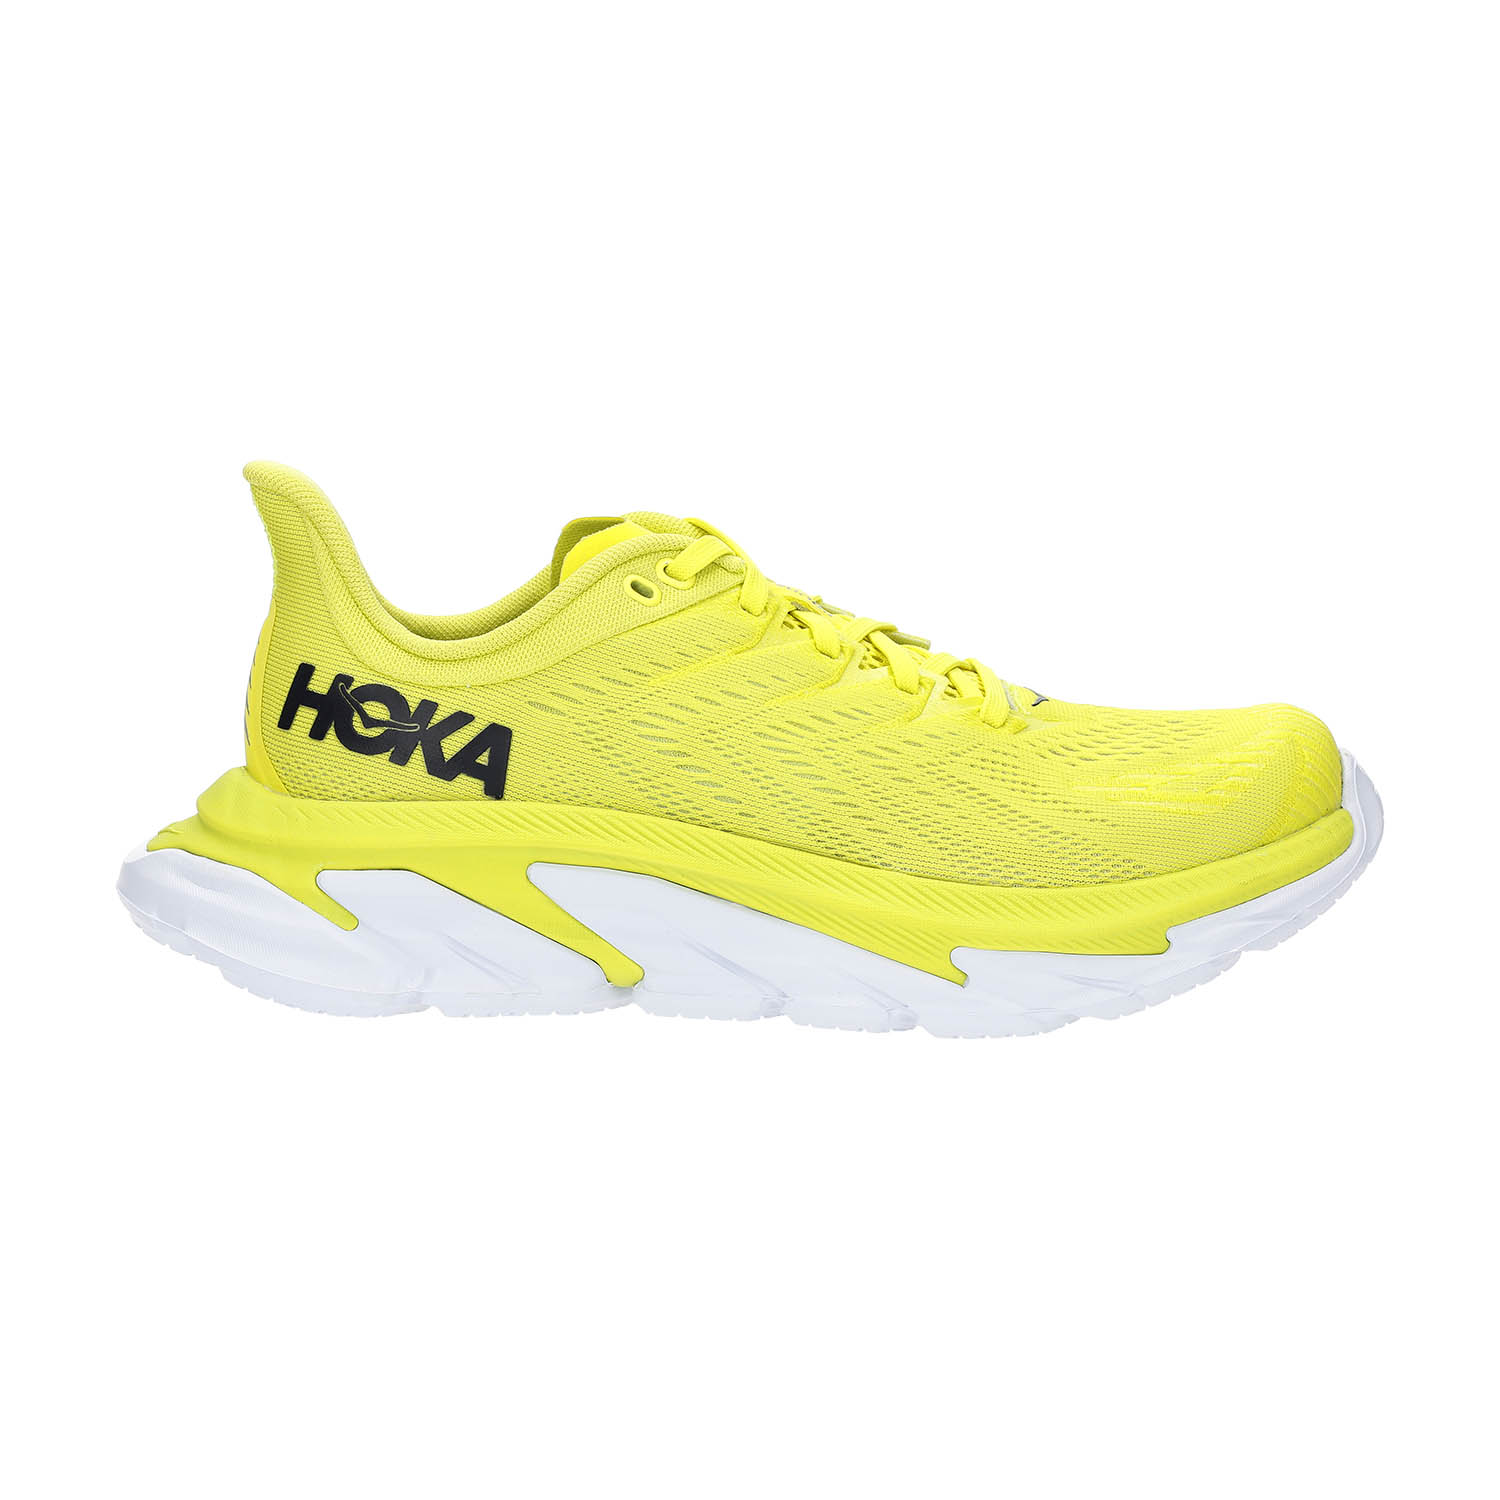 Hoka One One Clifton Edge - Citrus/White